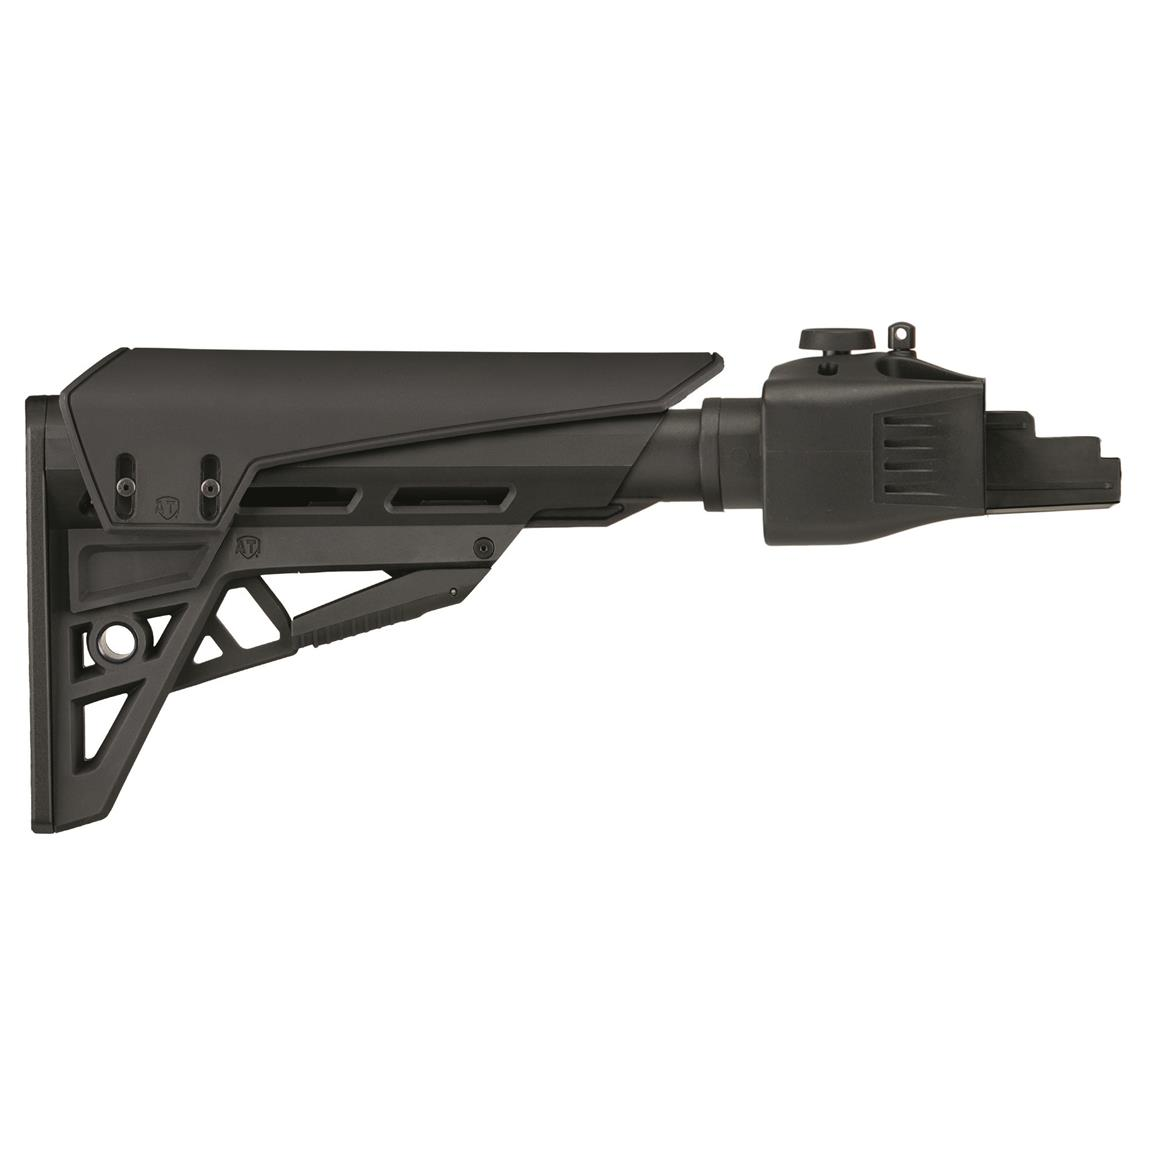 ATI TactLite StrikeForce R22 Folding Rifle Stock For Ruger 10/22 Rifles, Black